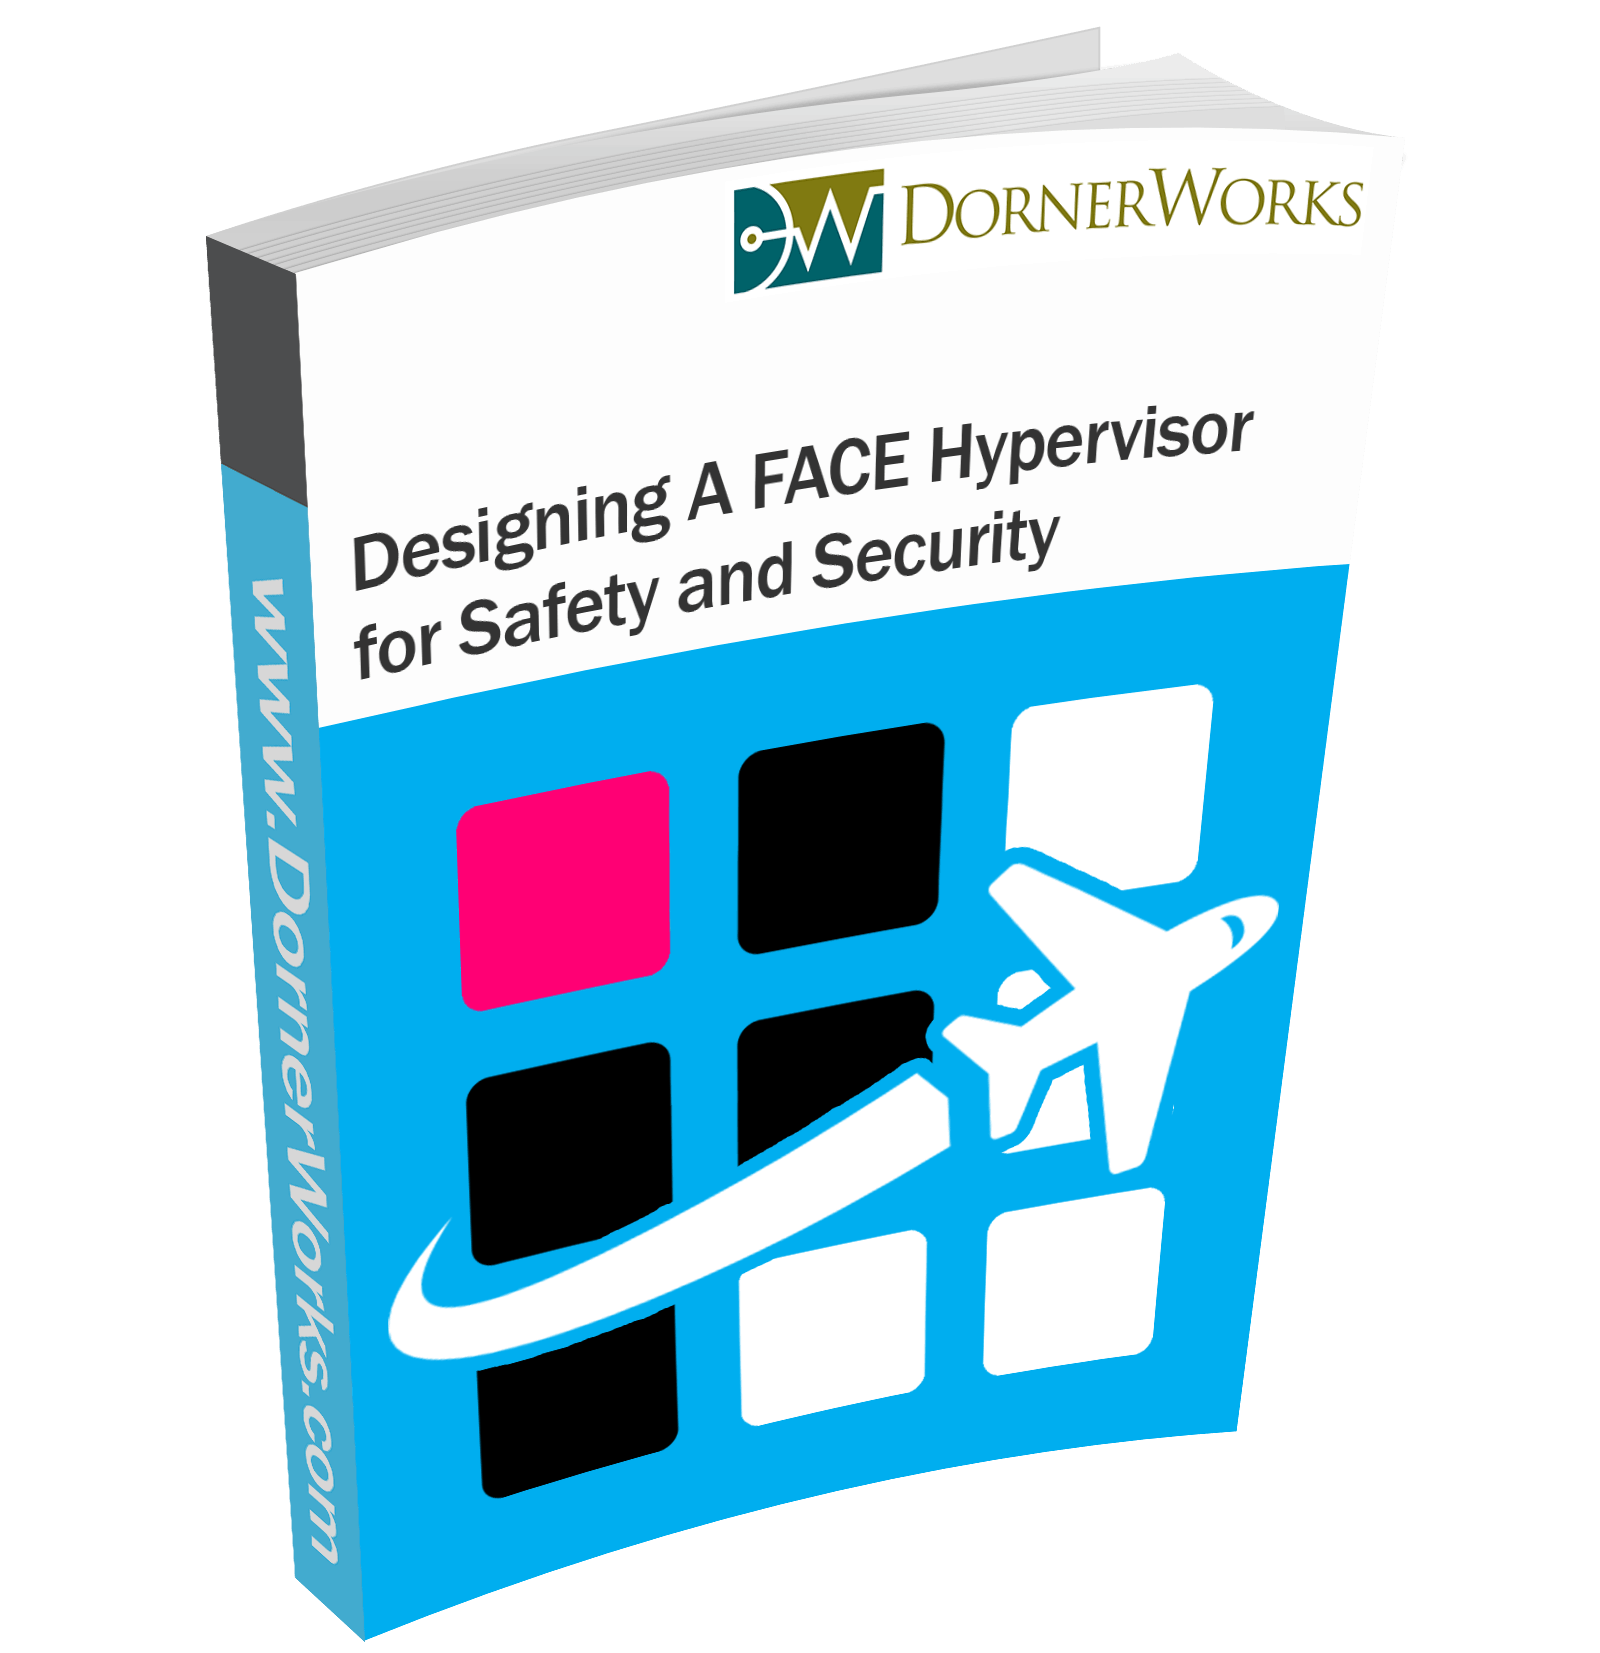 Designing A Future Airborne Capability Environment (FACE) Hypervisor for Safety and Security